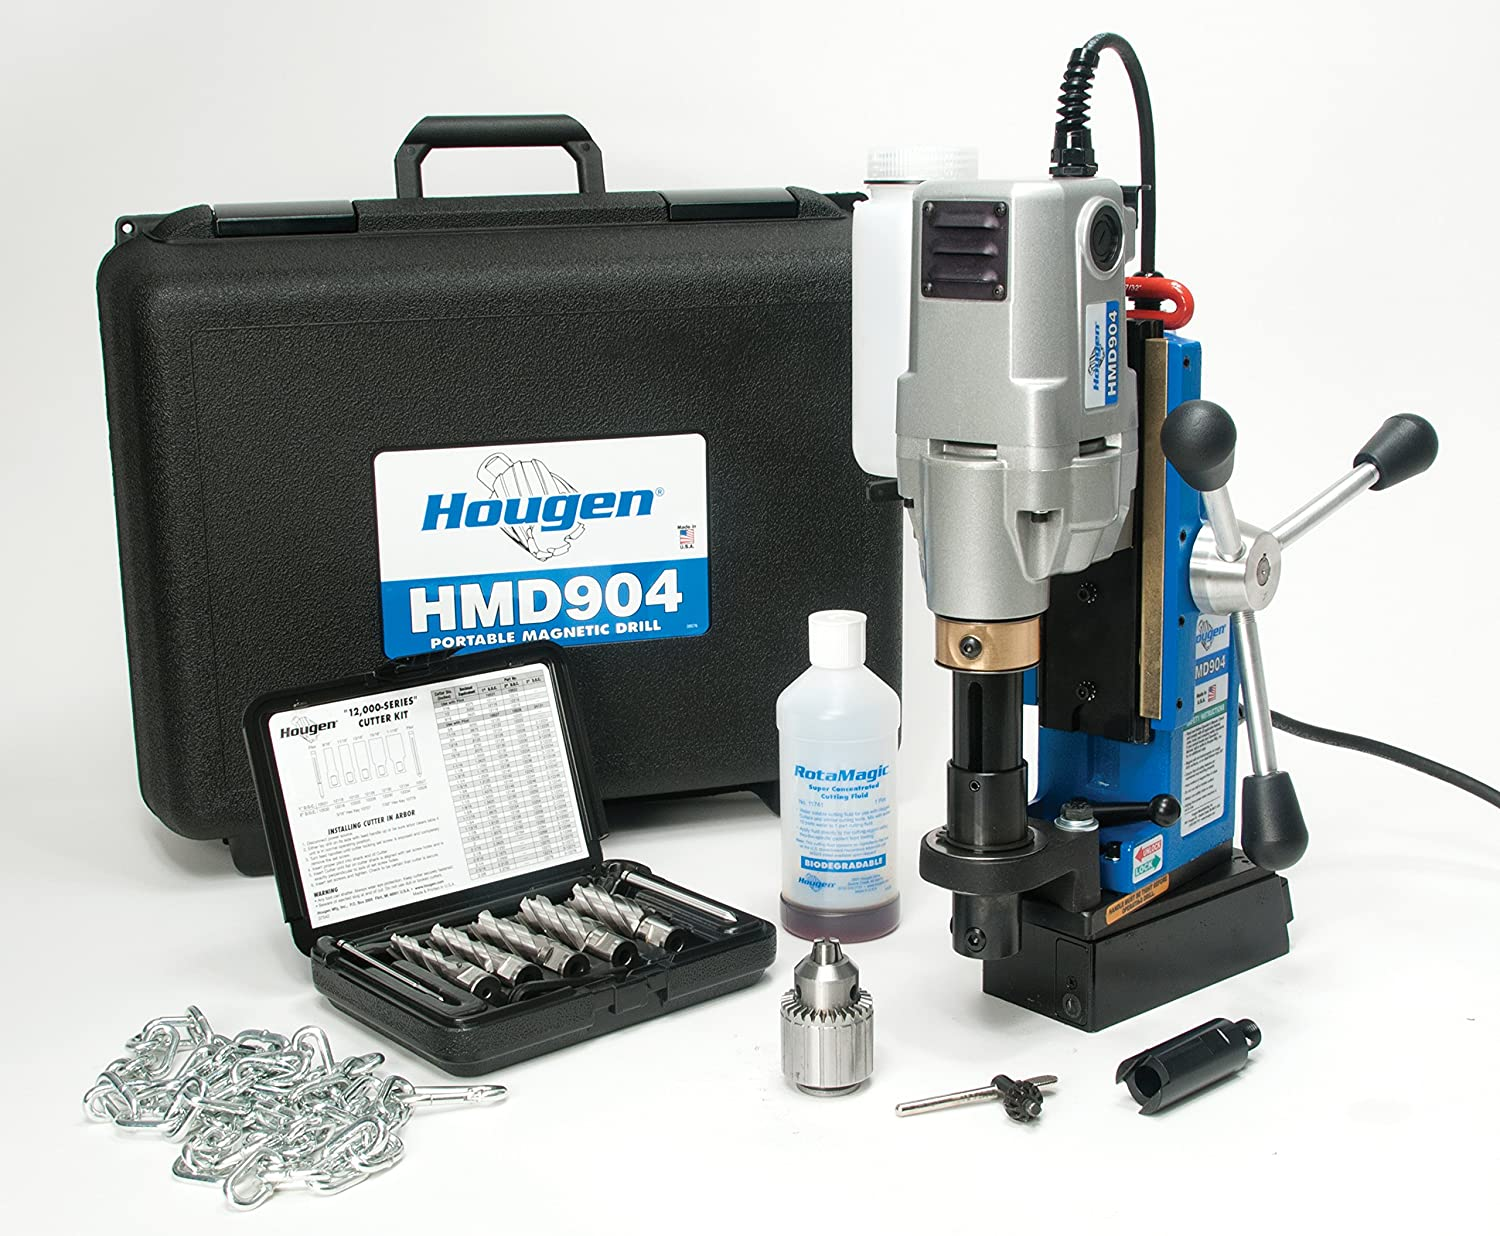 Hougen HMD904S 115-Volt Swivel Base Magnetic Drill w coolant bottle plus 1 2 drill chuck, adapter and 12002 Rotabroach Cutter kit